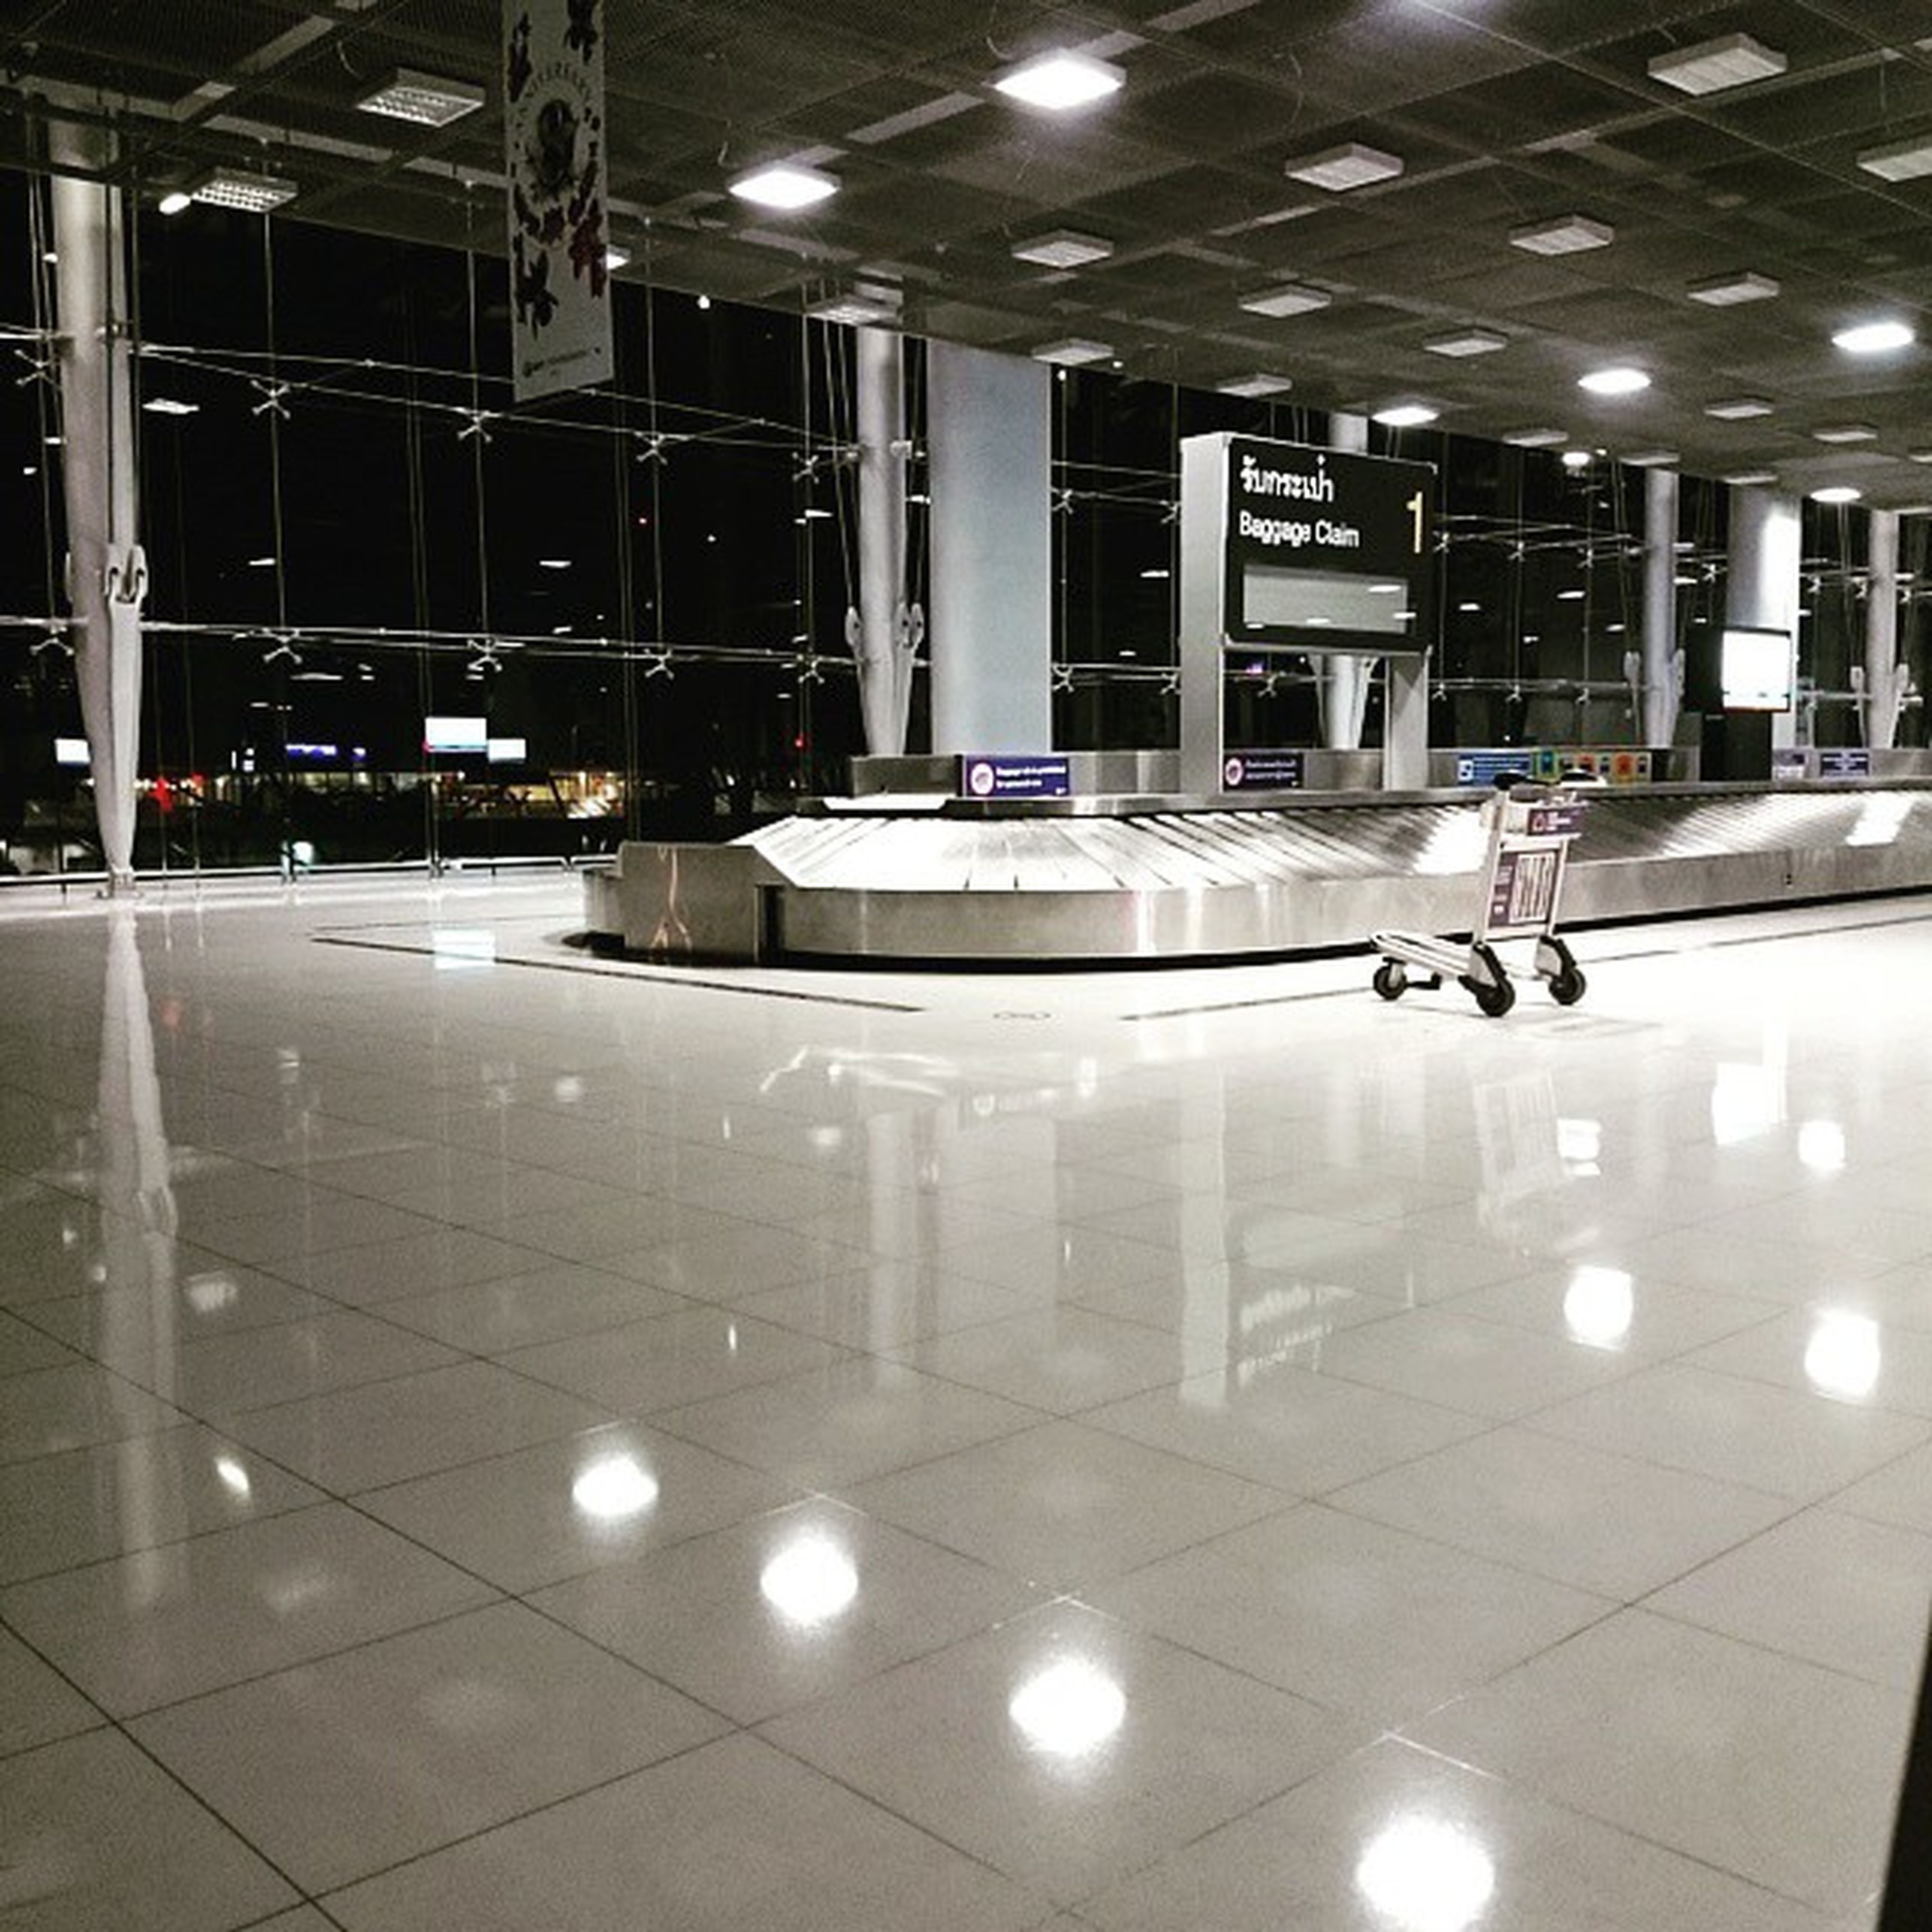 indoors, illuminated, lighting equipment, ceiling, flooring, night, built structure, architecture, reflection, interior, tiled floor, glass - material, light - natural phenomenon, tile, empty, window, transparent, modern, incidental people